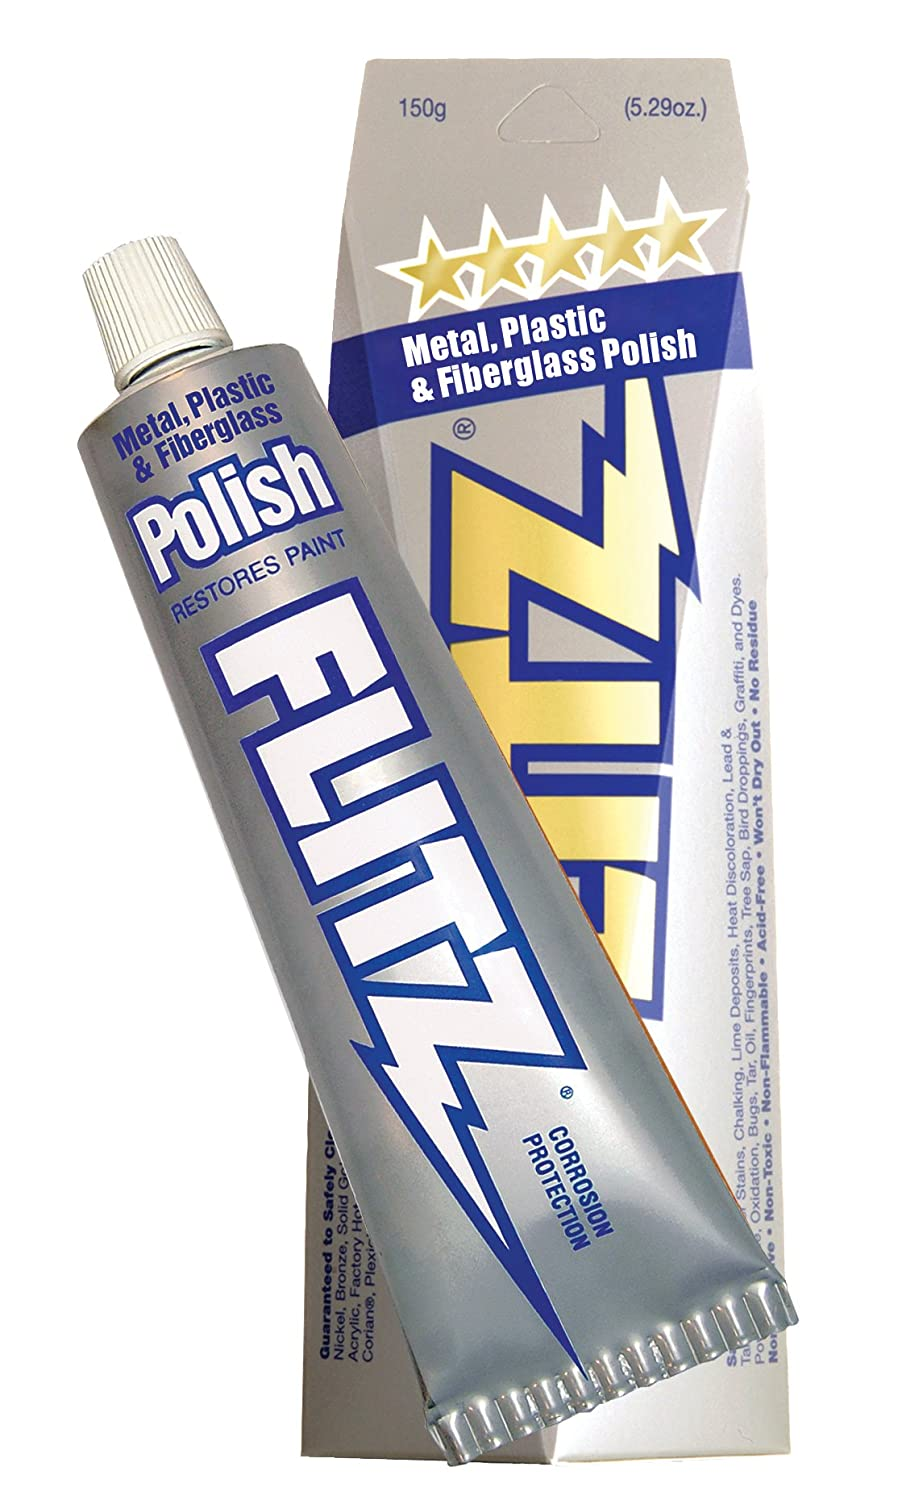 Flitz BU 03515 Blue Metal, Plastic and Fiberglass Polish Paste - 5.29 oz